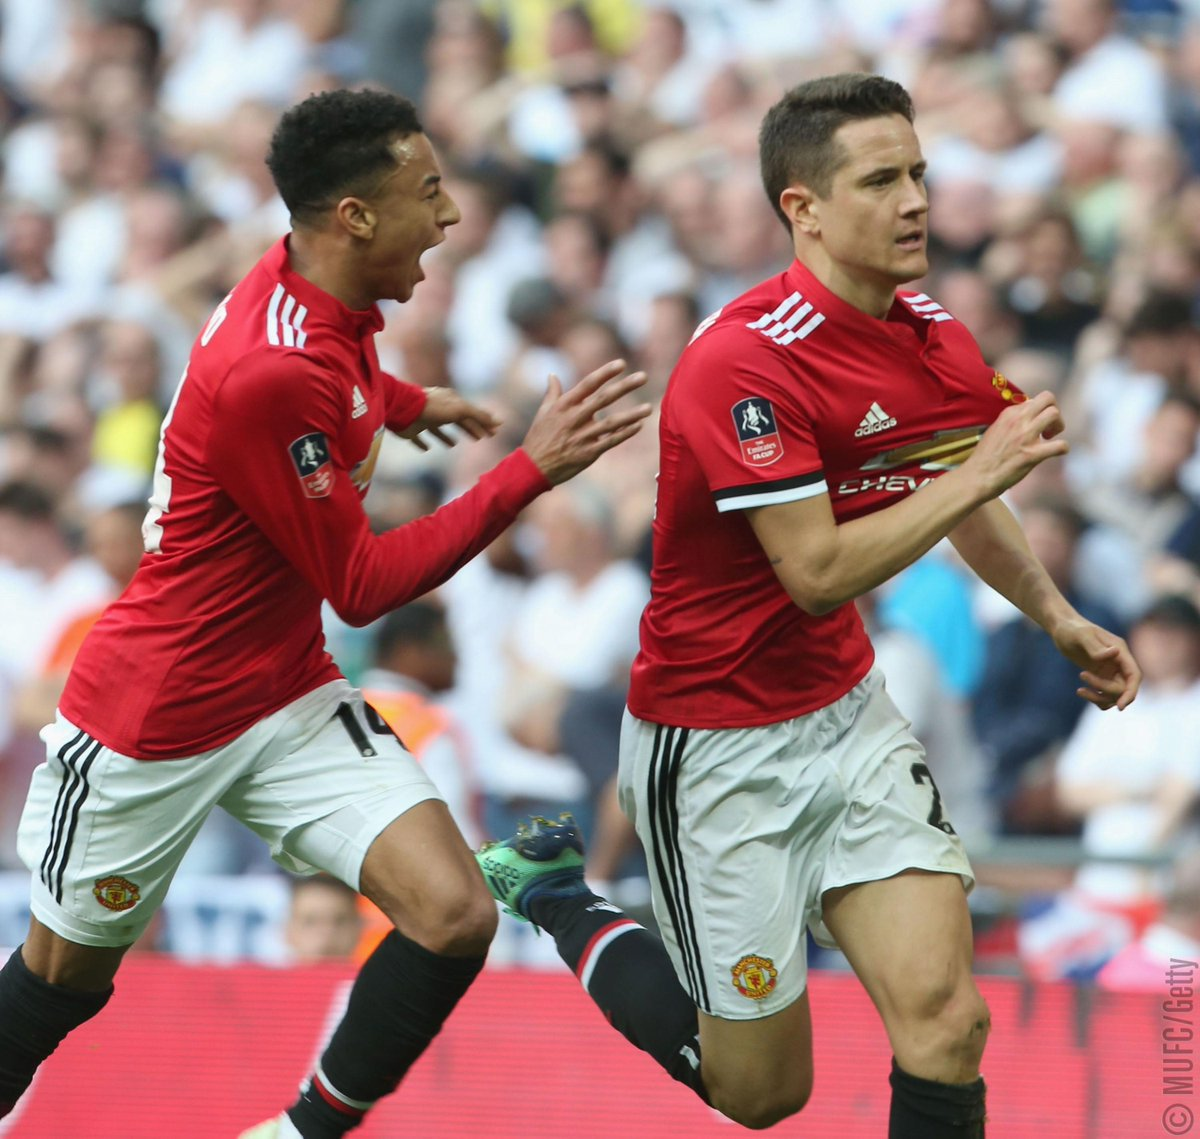 Happy Birthday to the man who \gets\ United more than most, Ander Herrera!